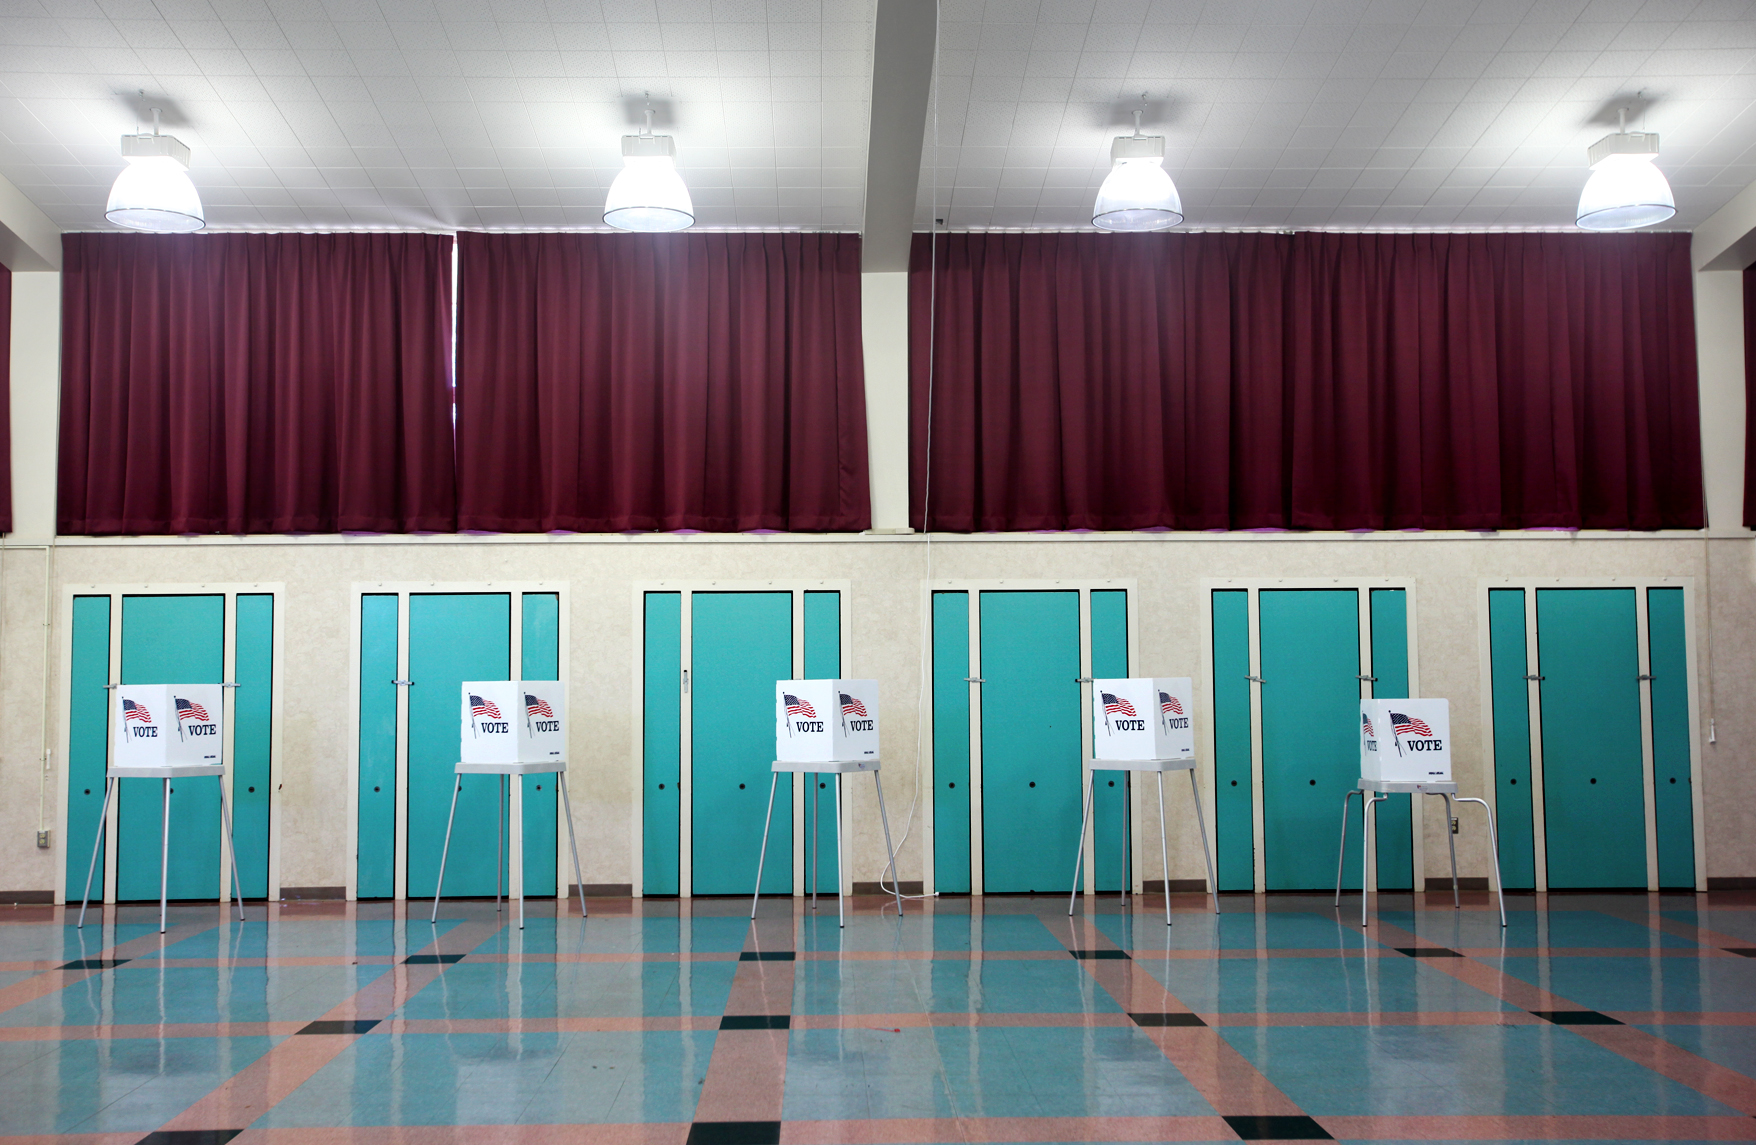 Voting booths at Graham Middle School in Mountain View, Calif.